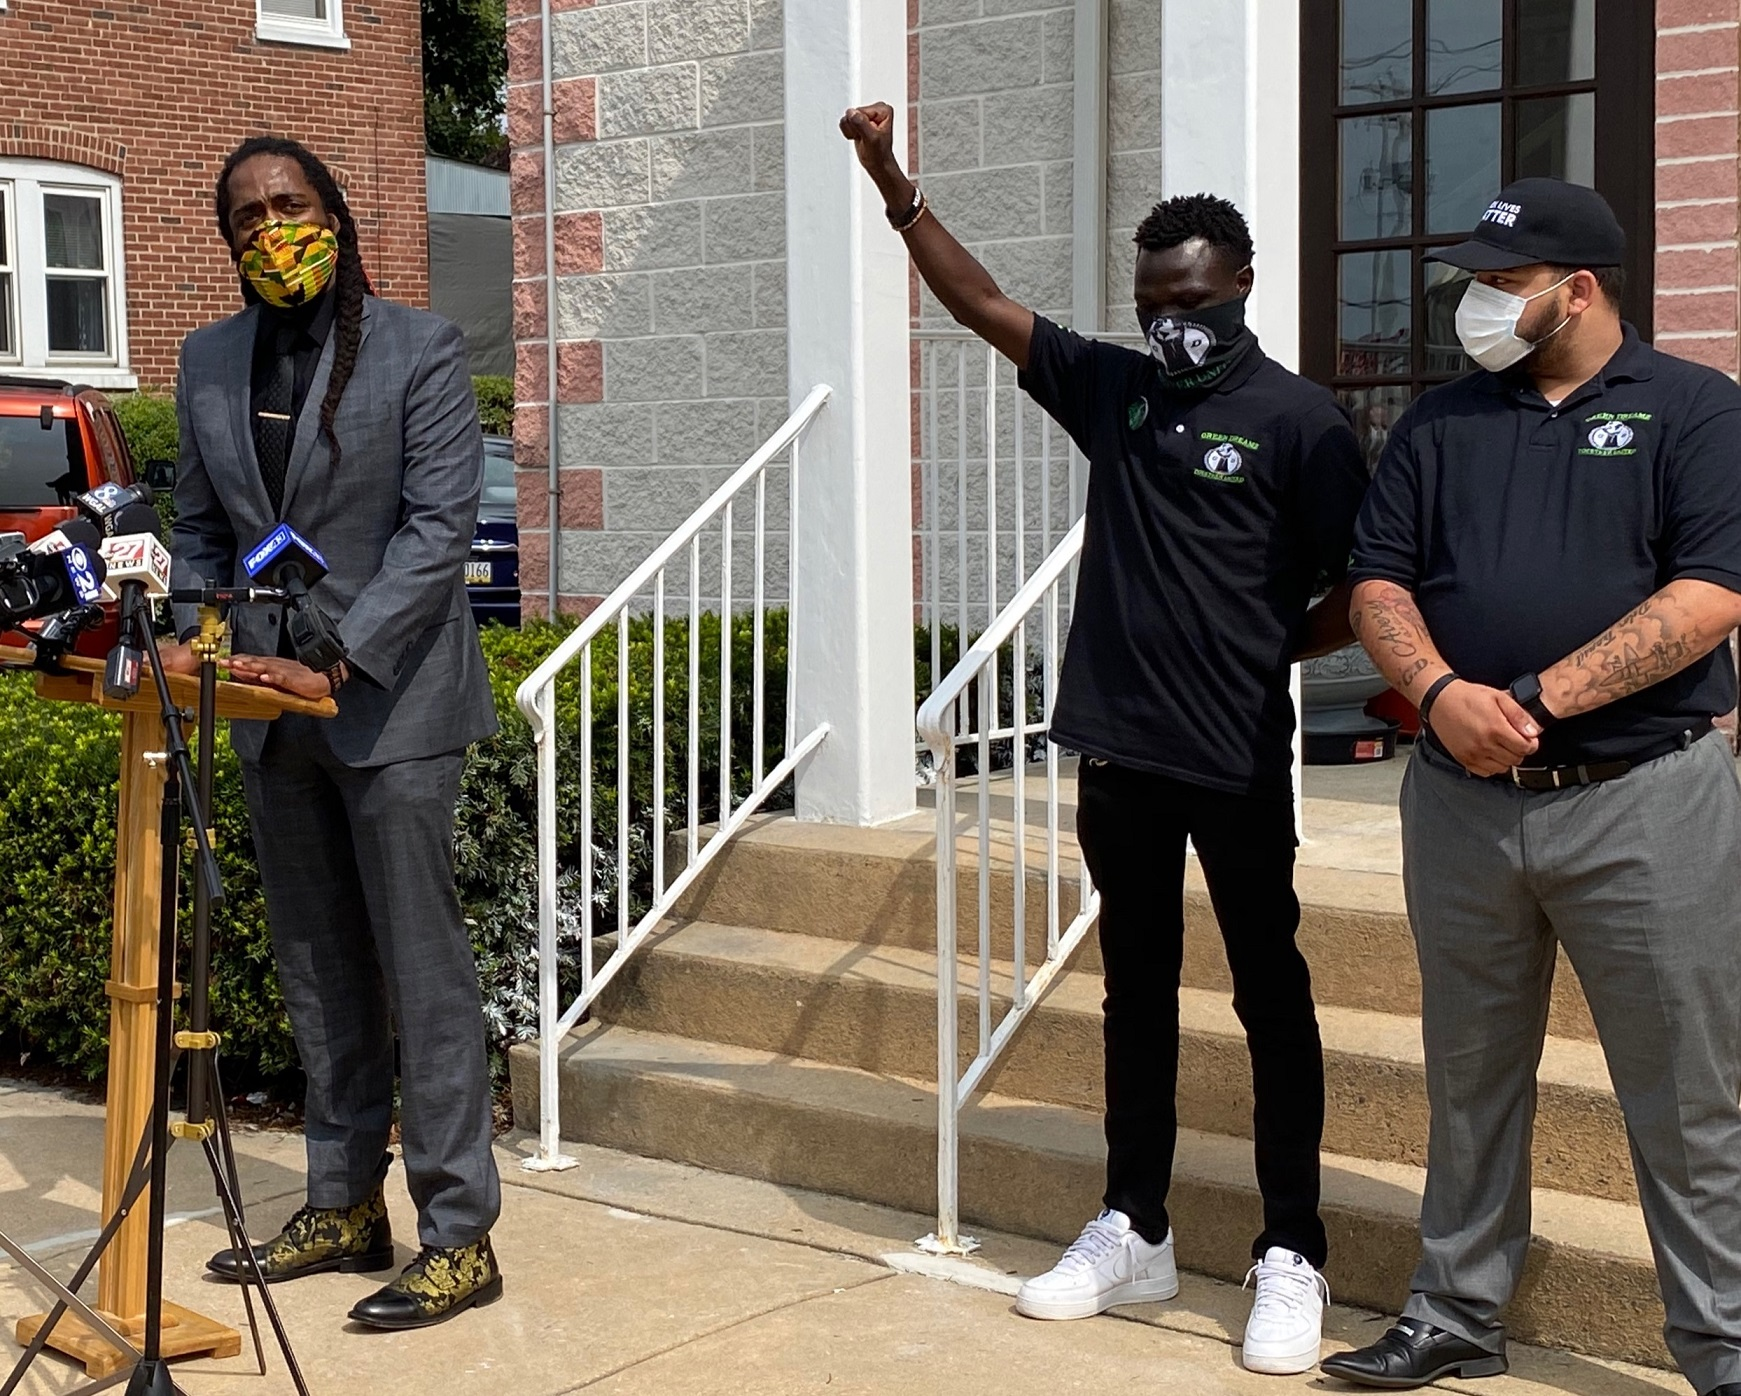 Lancaster City Council President Ismail Smith Wade-El, left, speaks to the media, accompanied by Alaak Deu, center, and Carlos Jimenez, both of Green Dreamz, on Thursday, Sept. 17, 2020. (Photo: Olivia Smucker)